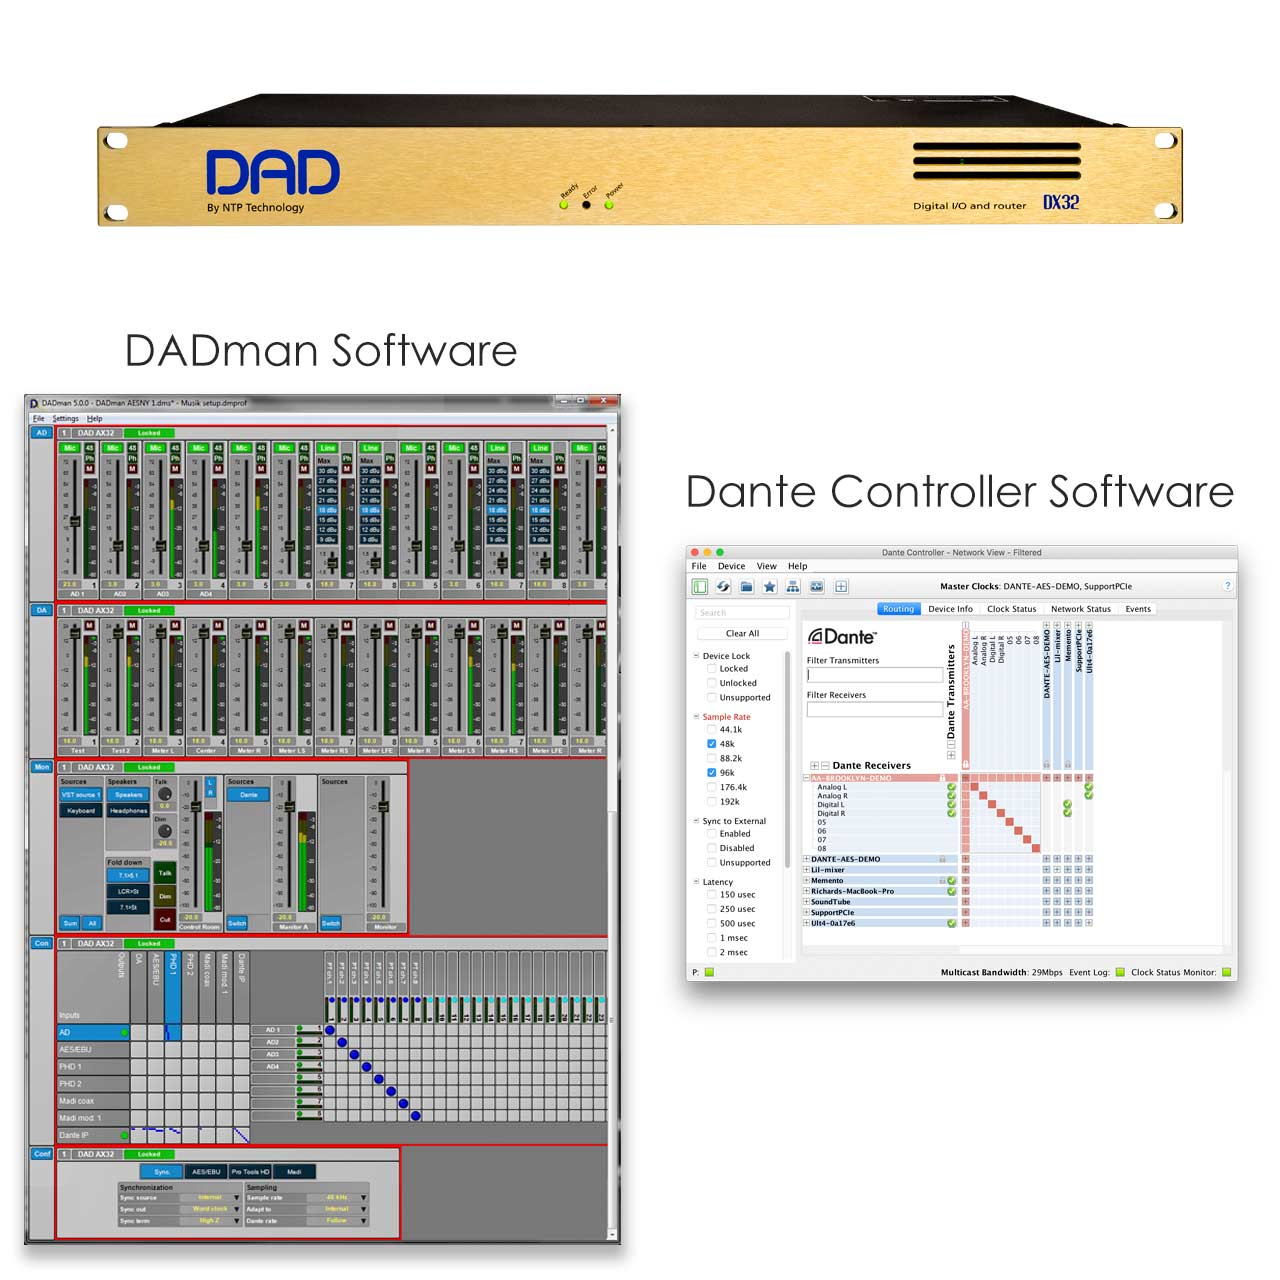 DX32R with DADman Dante Software